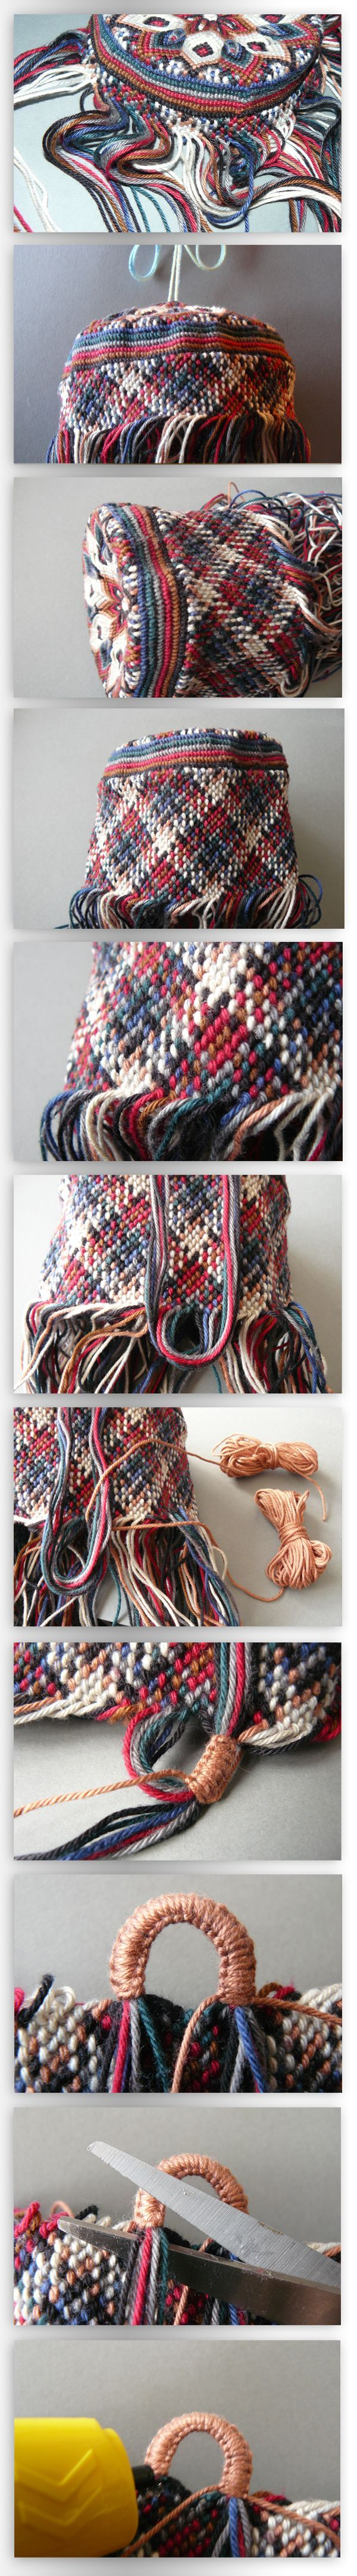 Pouch Tutorial Part IV (Body and Loops) by ~nimuae on deviantART: